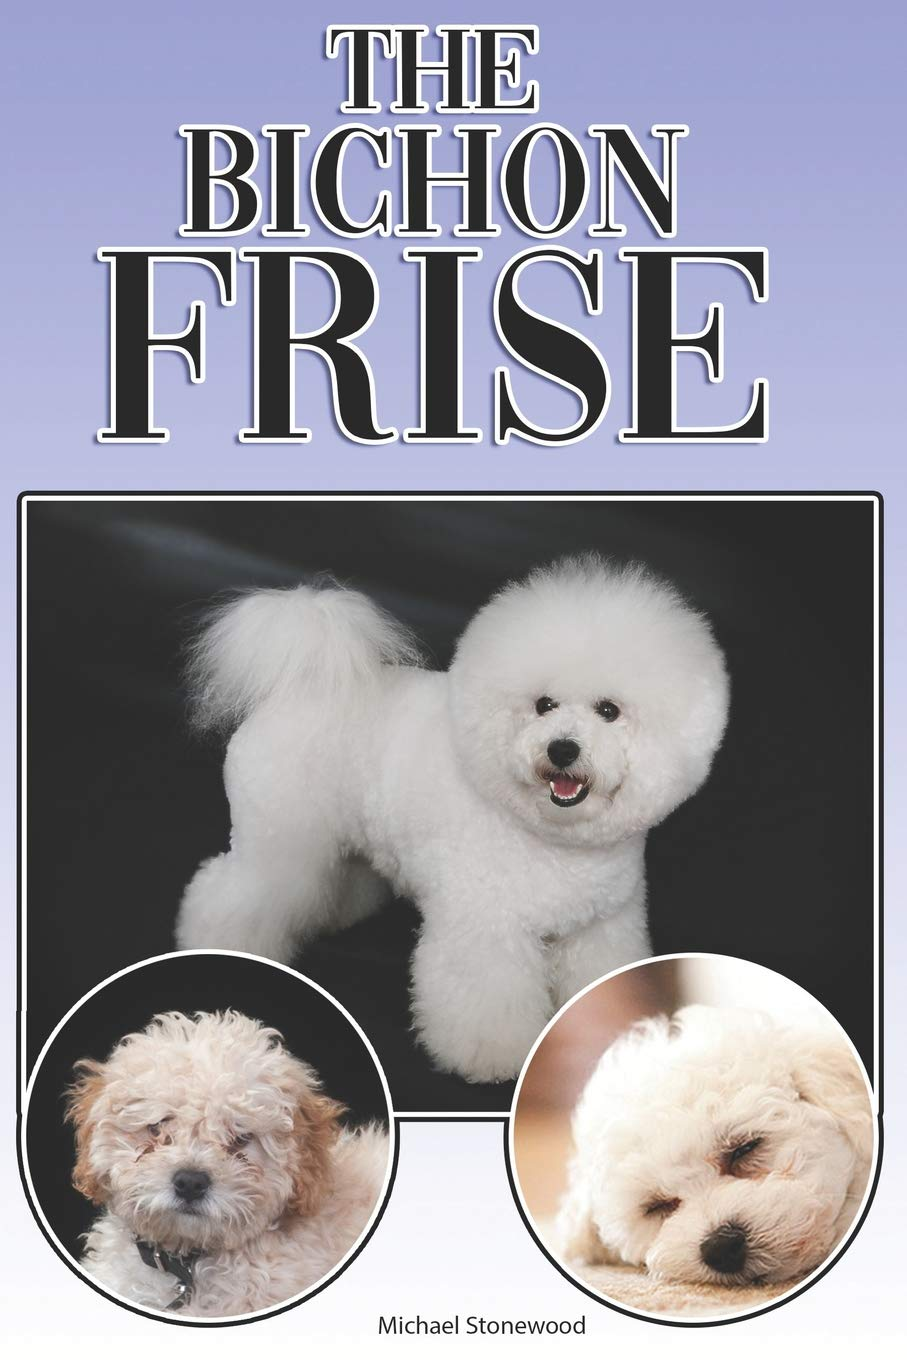 The Bichon Frise: A Complete and Comprehensive Beginners Guide to: Buying, Owning, Health, Grooming, Training, Obedience, Understanding and Caring for Your Bichon Frise